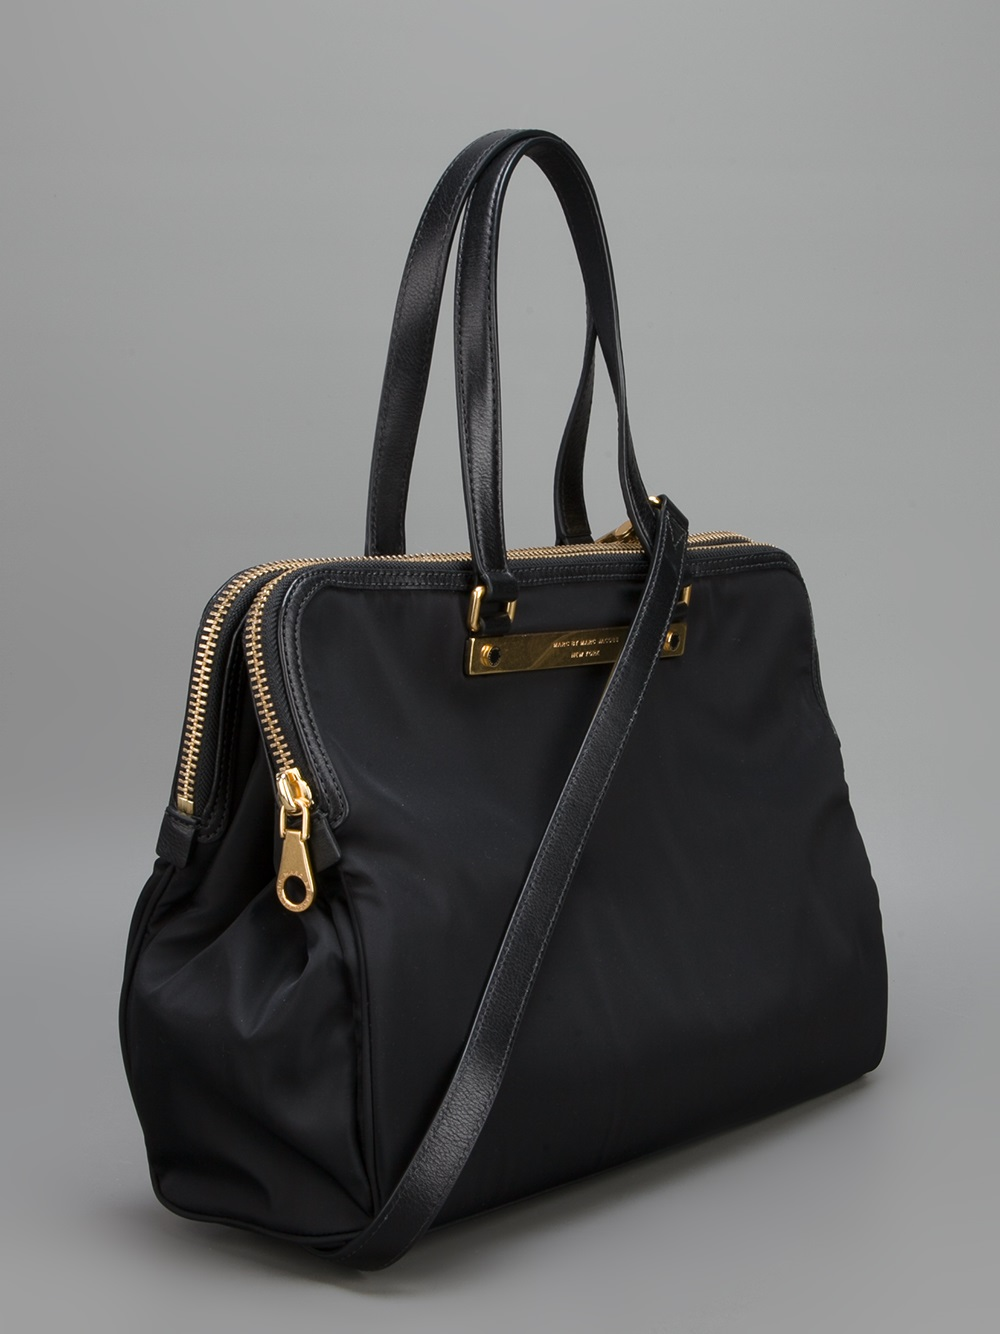 9c3ff9c99019 Marc By Marc Jacobs Work It Cindy Tote in Black - Lyst